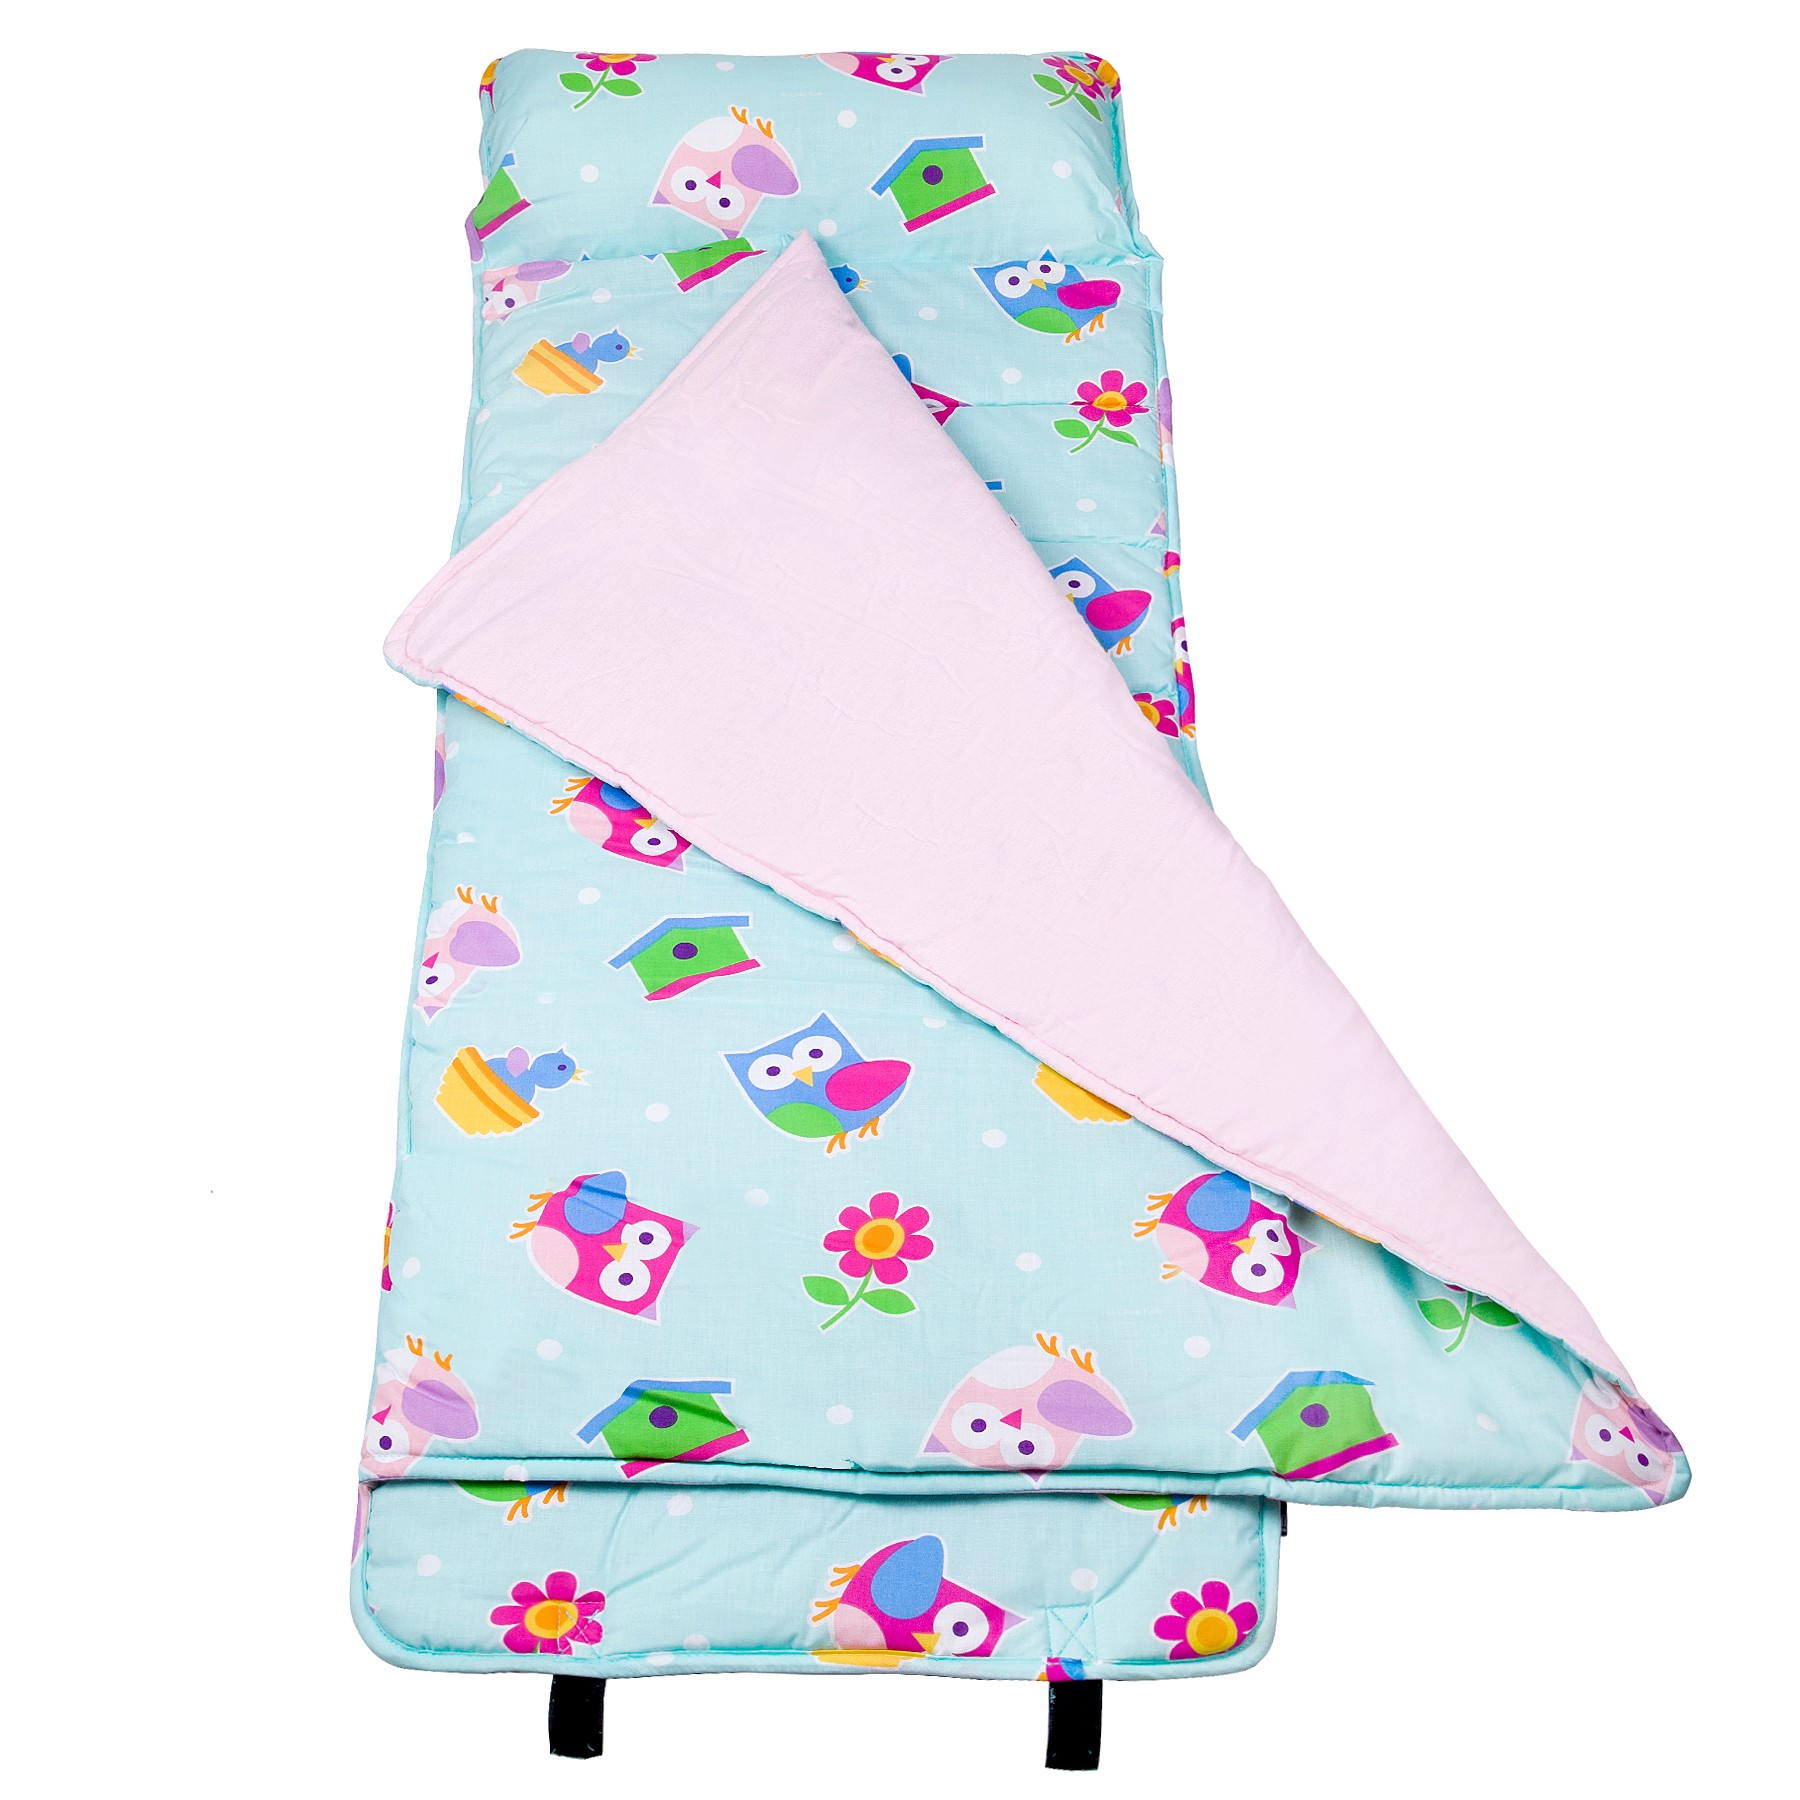 Birdie Olive Kids Bedding Nap Mat Kids Bedding